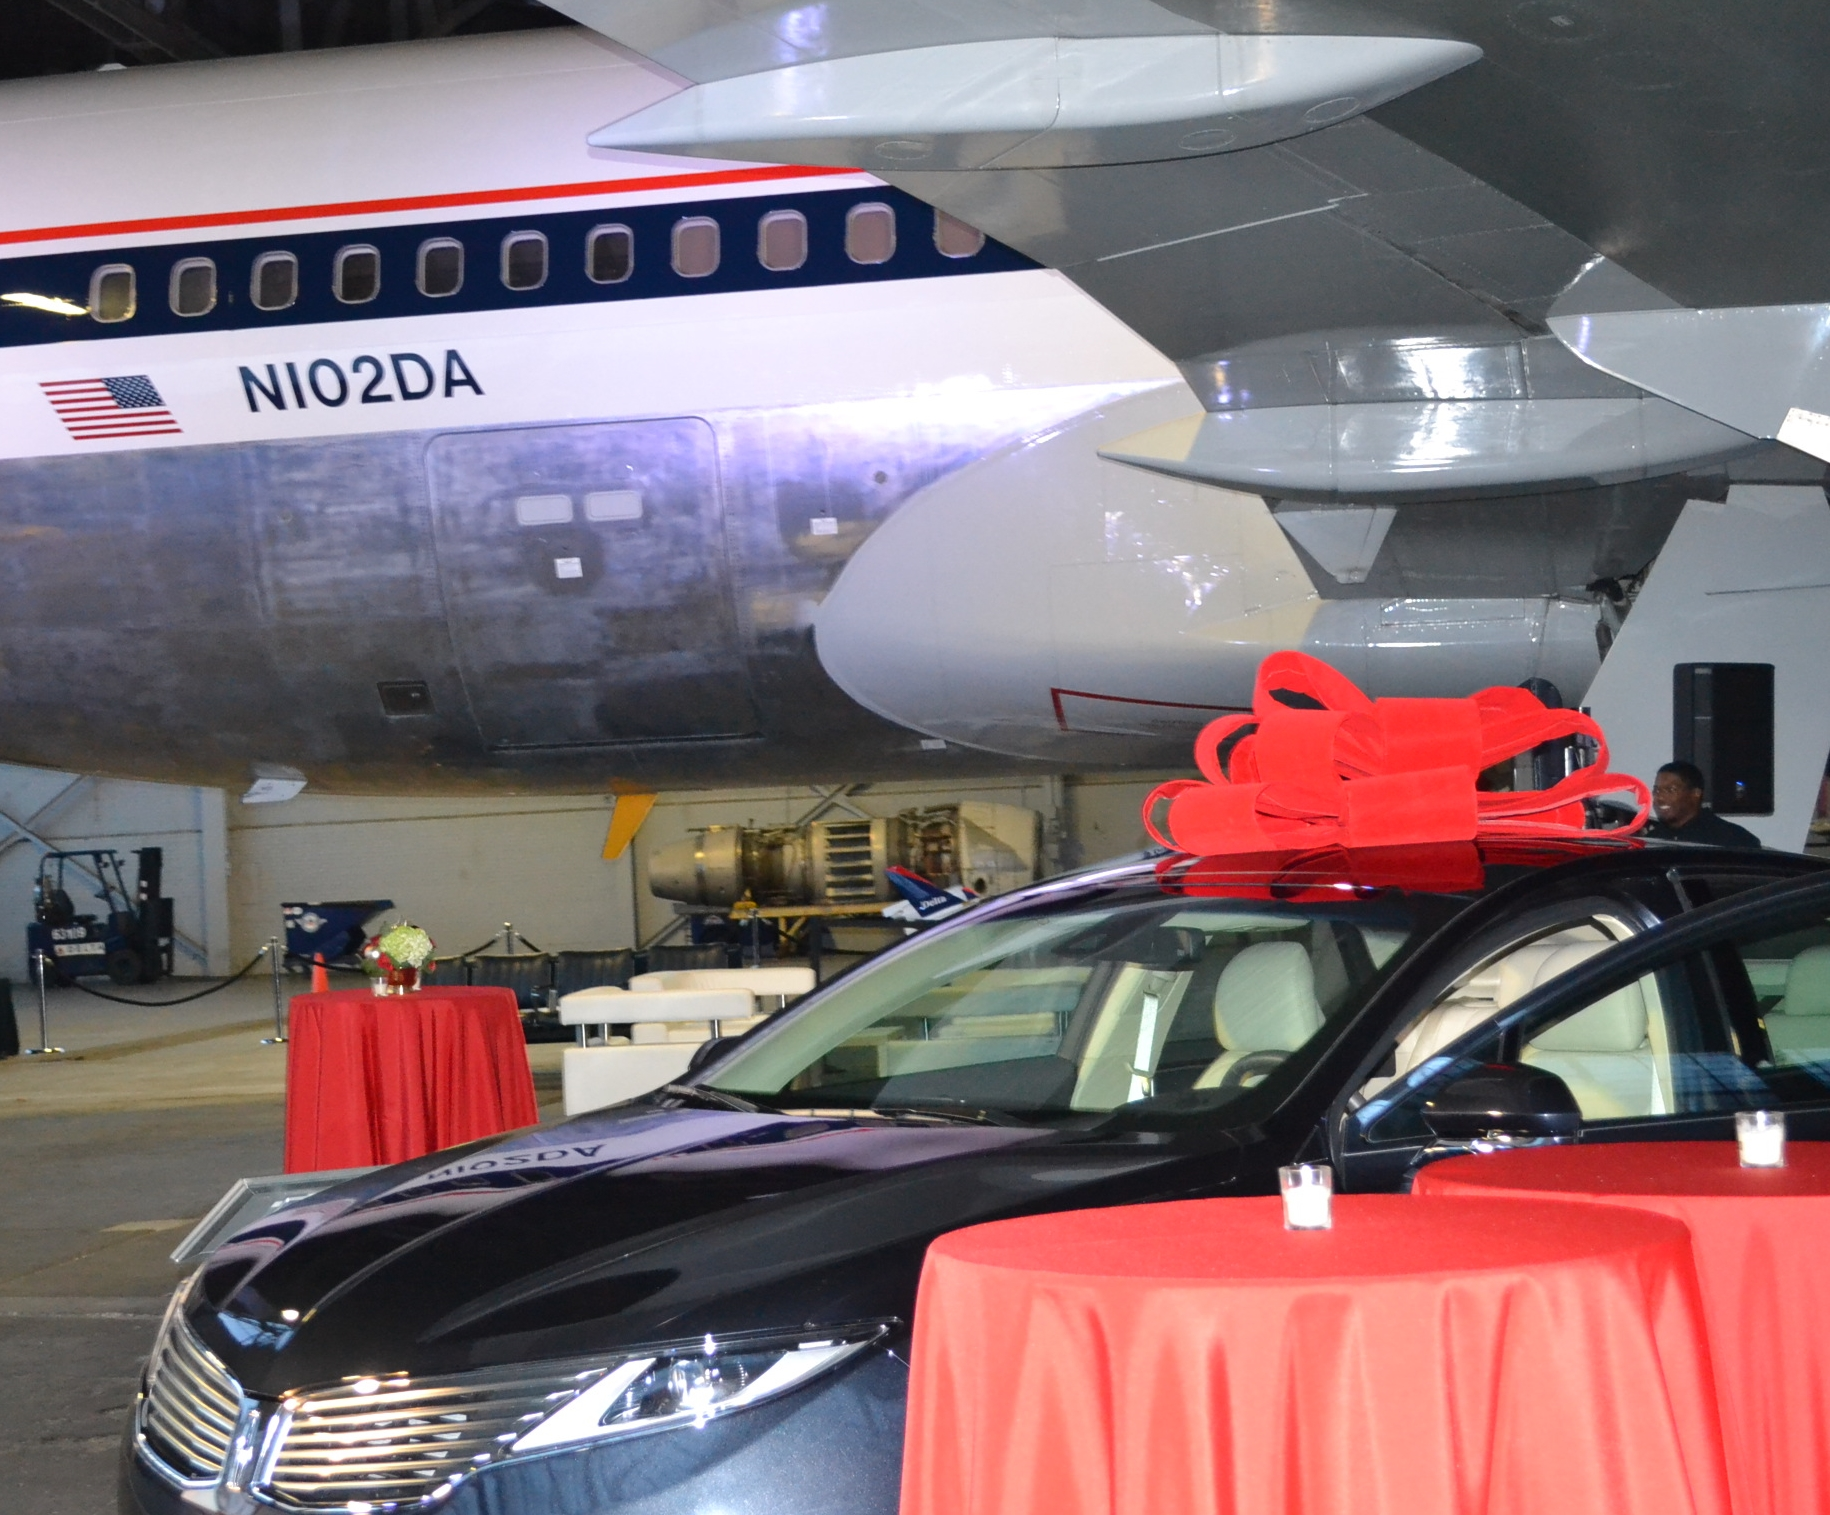 Holiday Lounge, hosted by Lincoln Motor Company